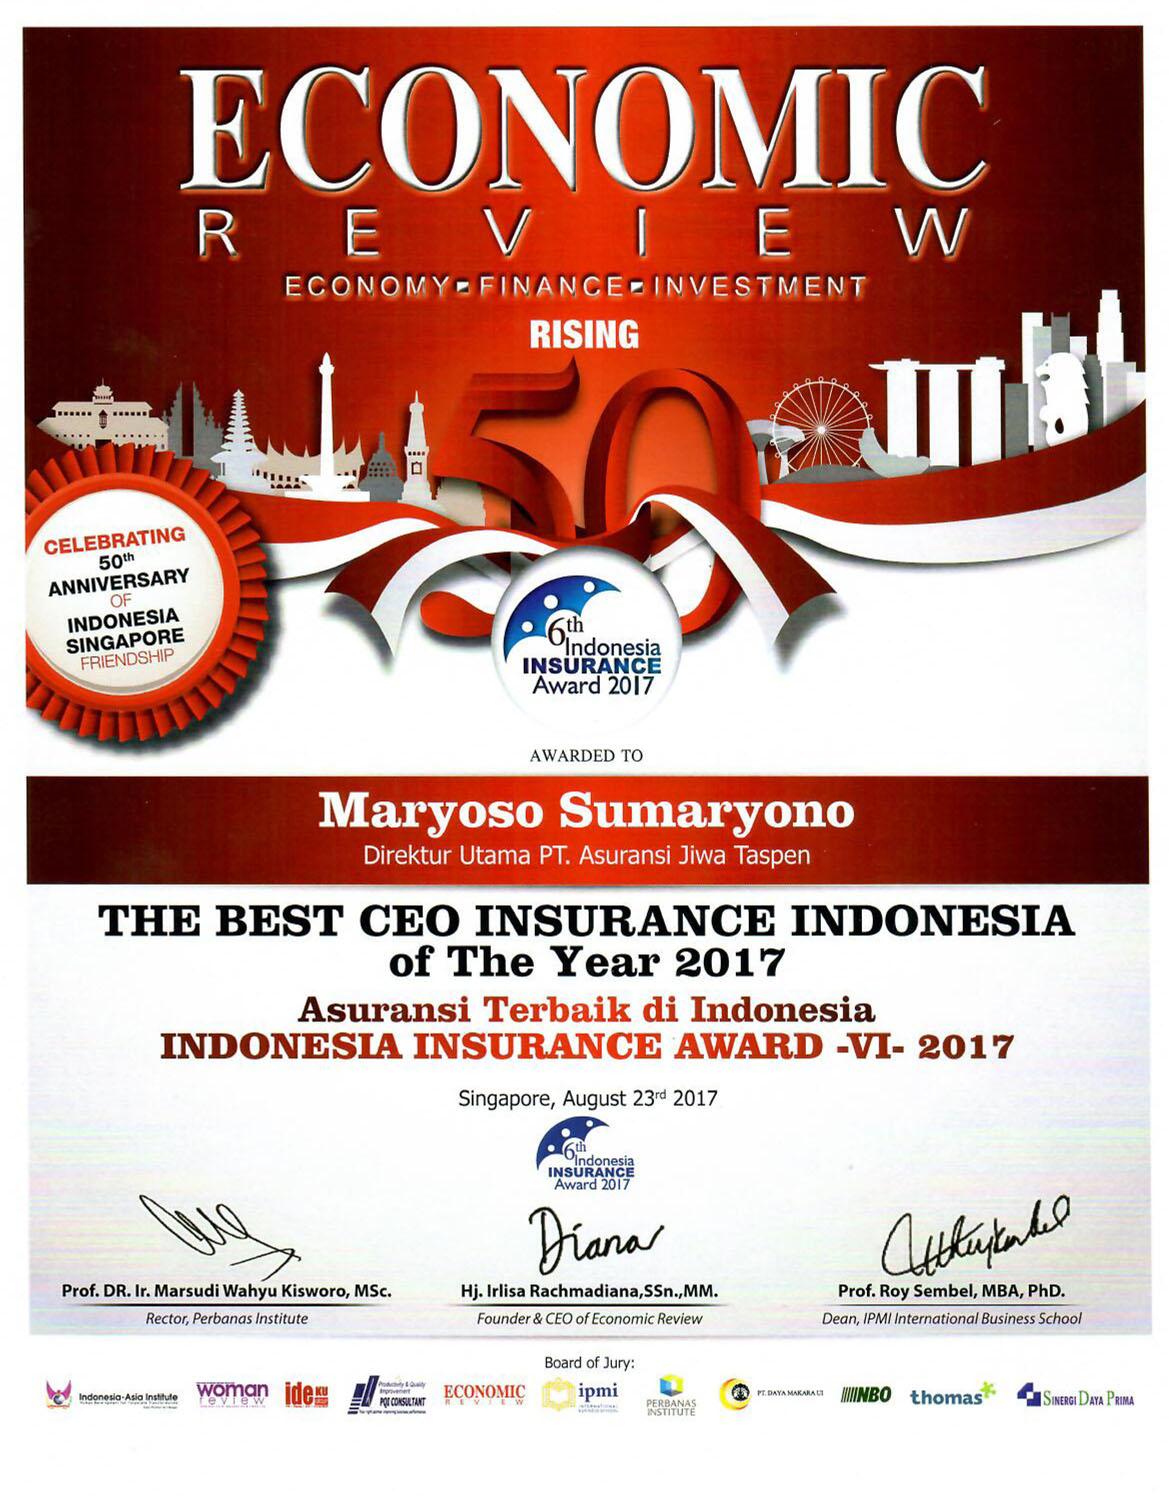 The Best CEO IIA 2017